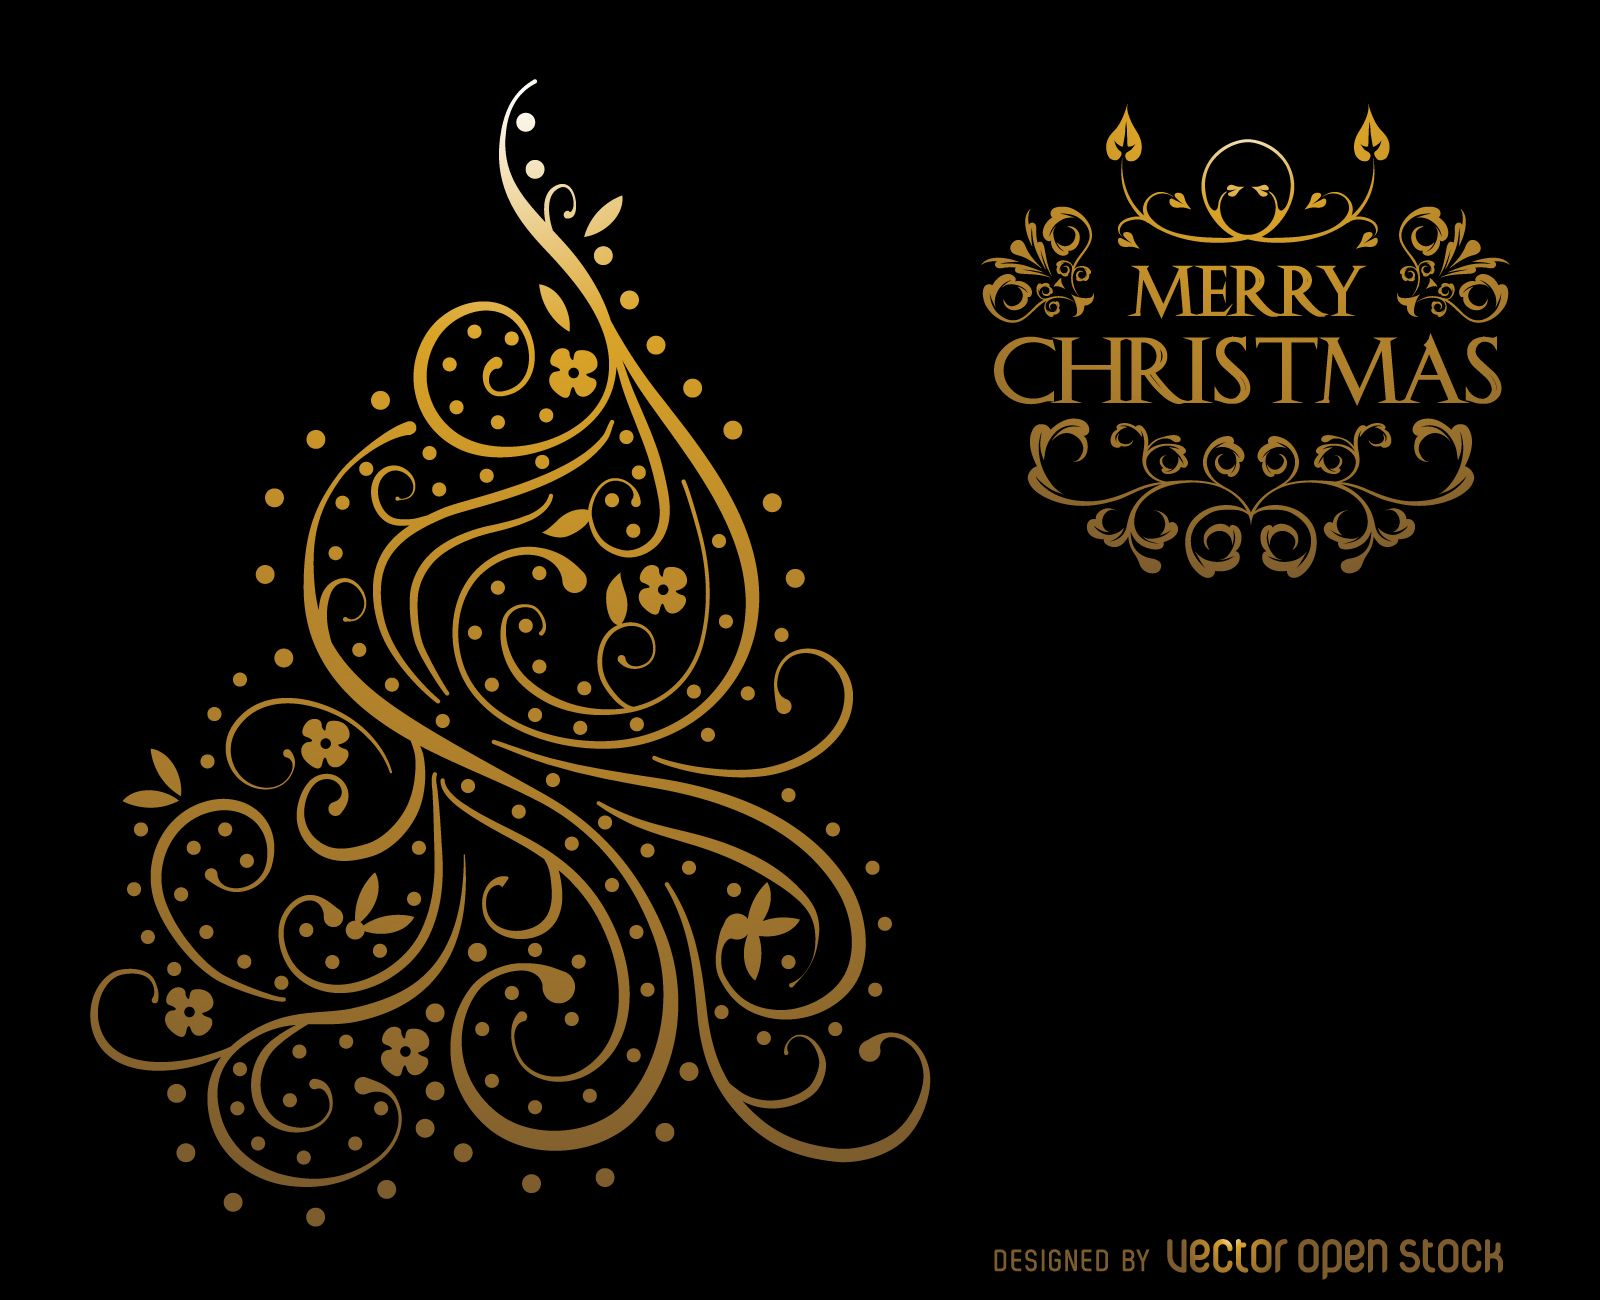 Christmas card design featuring ornaments with swirls and